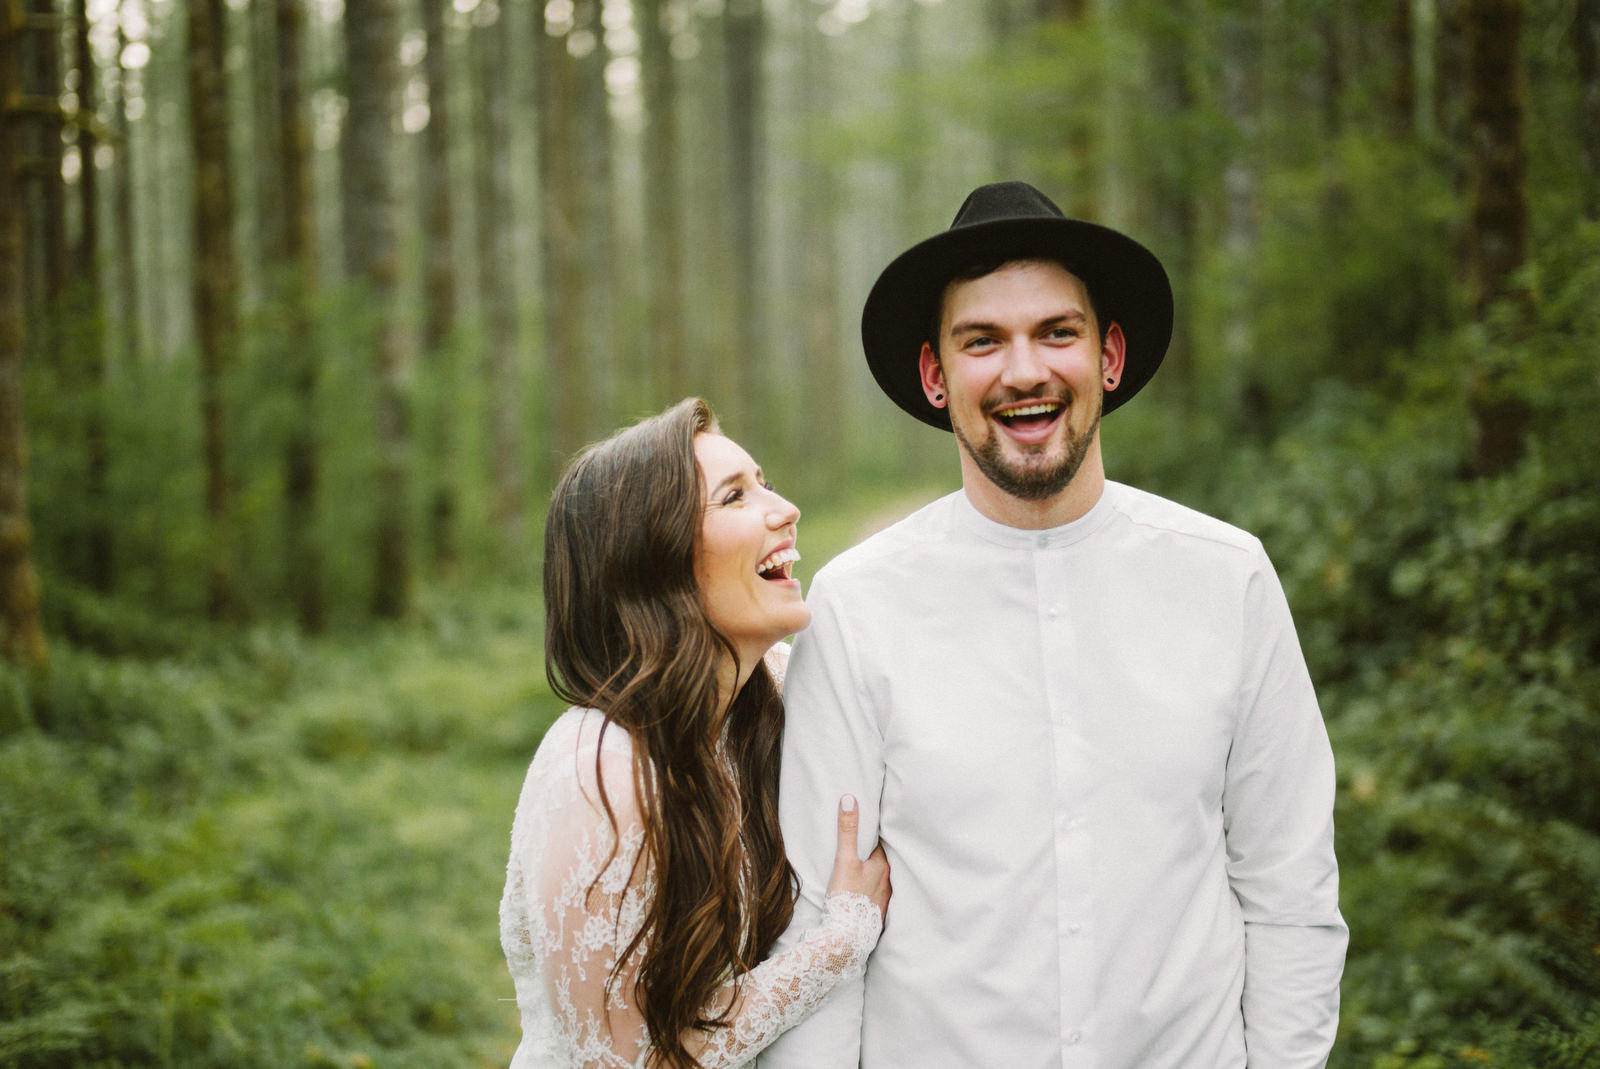 athena-and-camron-seattle-elopement-wedding-benj-haisch-rattlesnake-lake-christian-couple-goals15